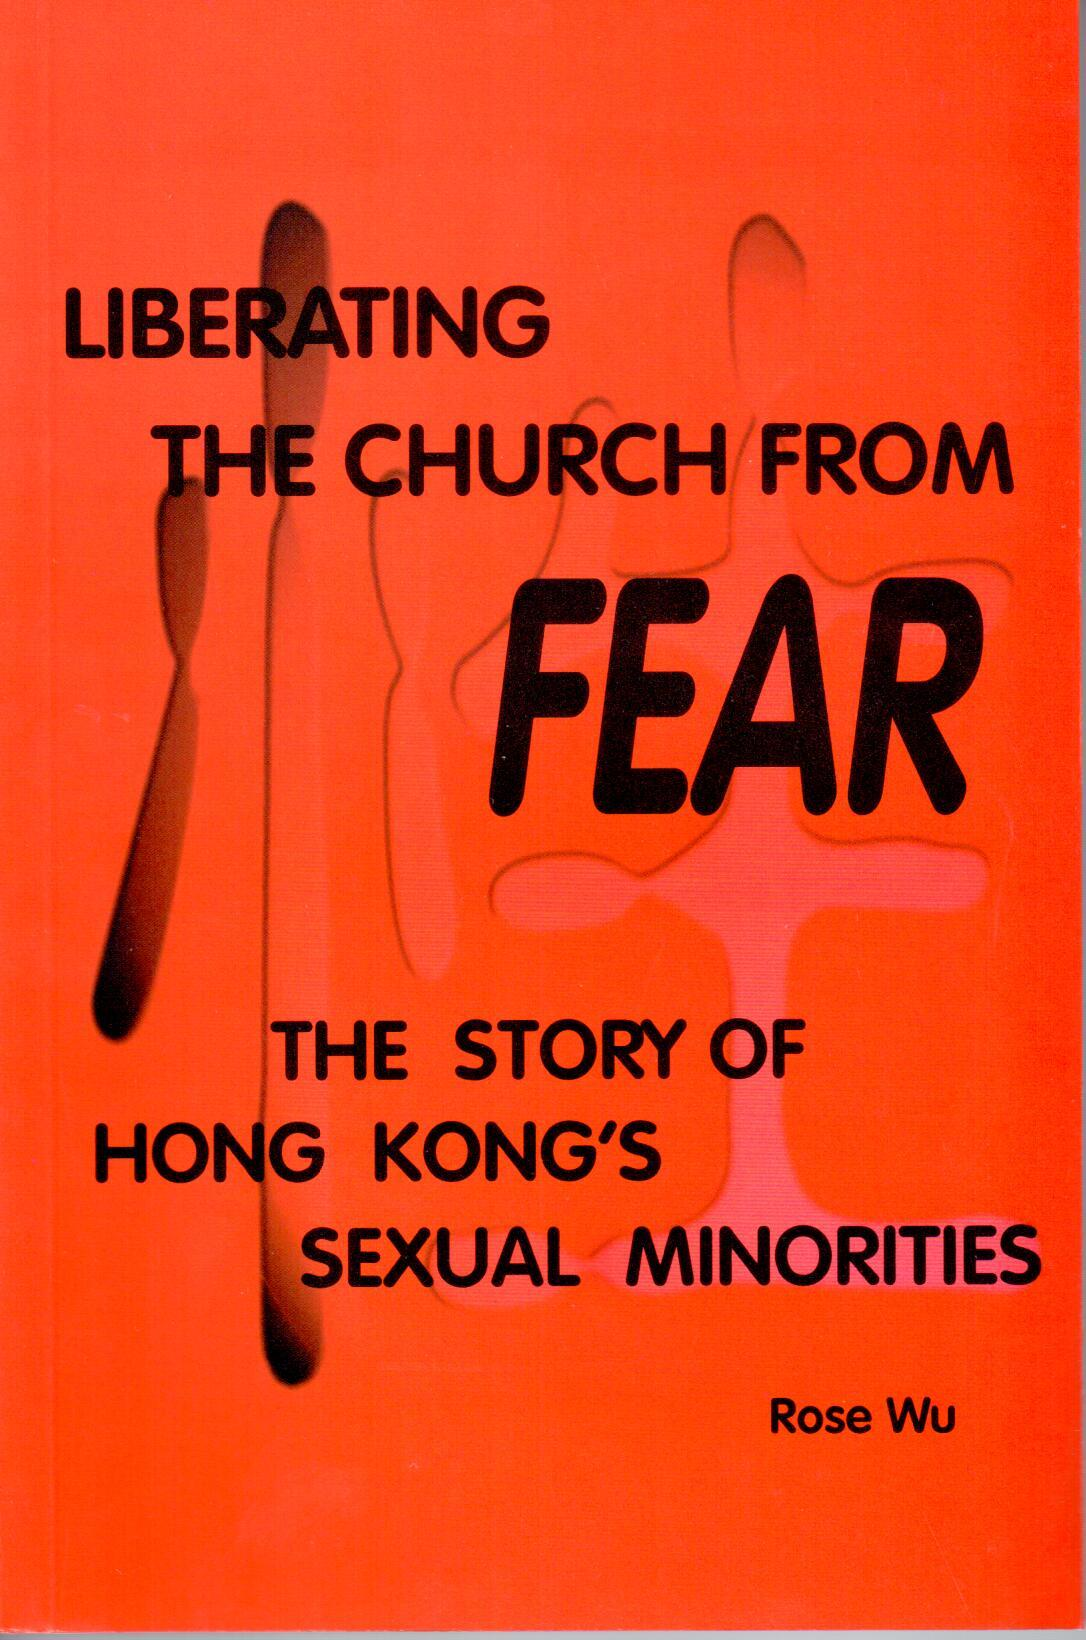 Liberating the Church from Fear